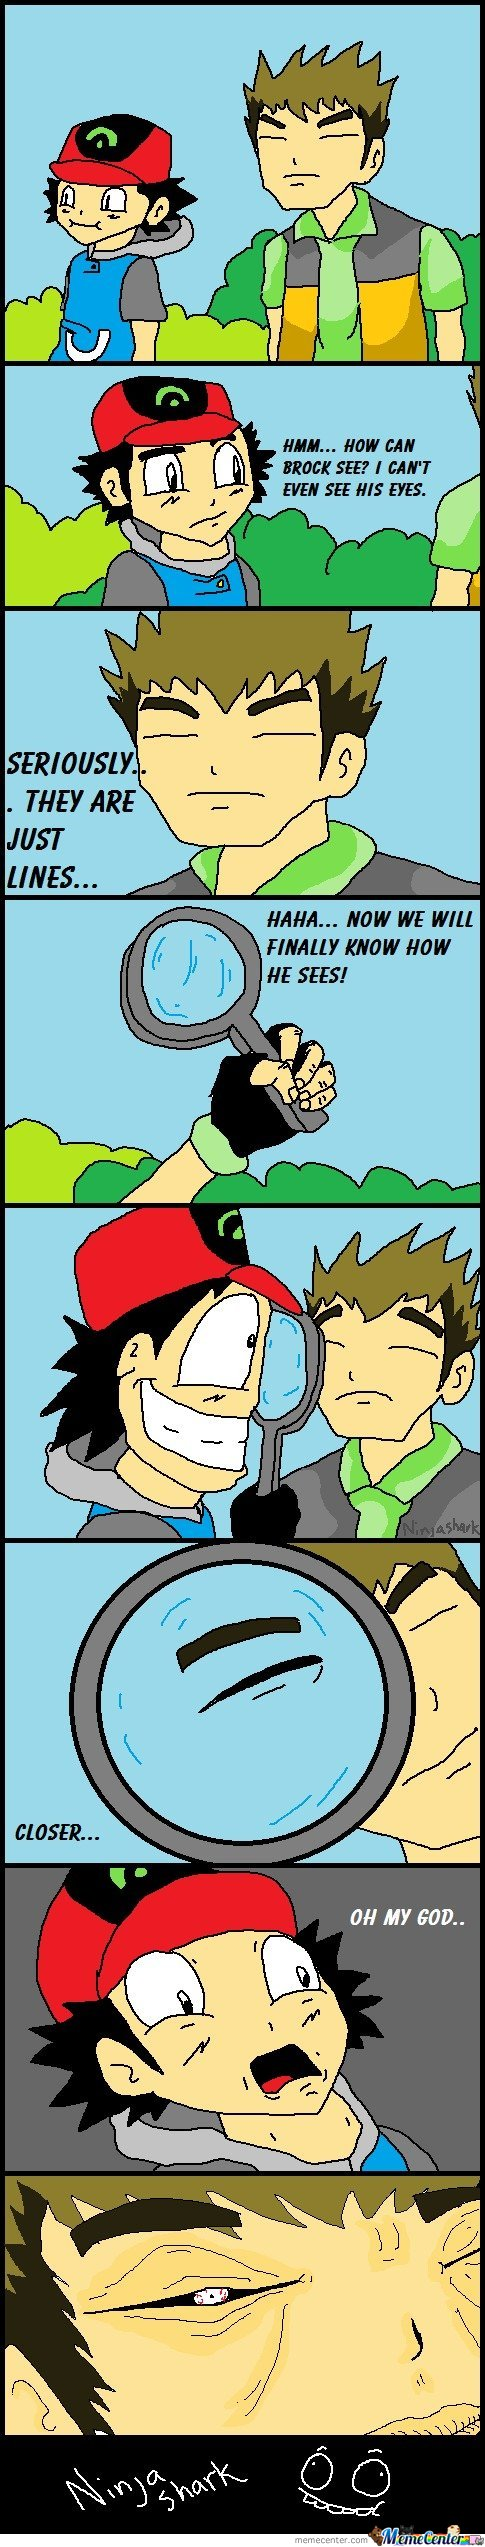 How can Brock see? I can't even see his eyes